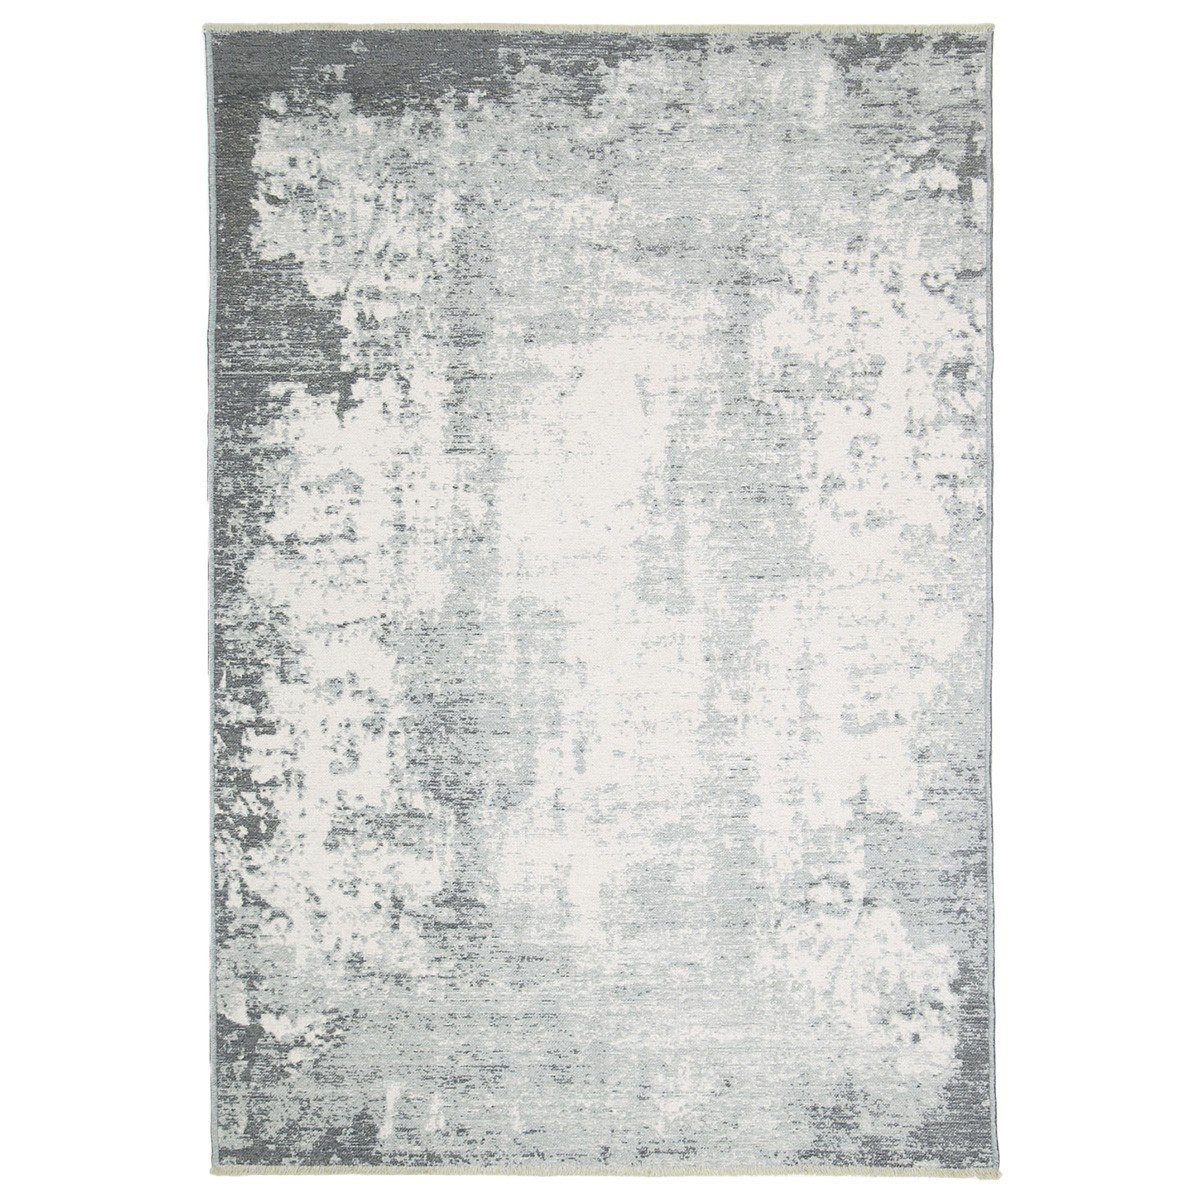 Rusty Vintage Abstract Reversible Rug, 120x170cm, Grey